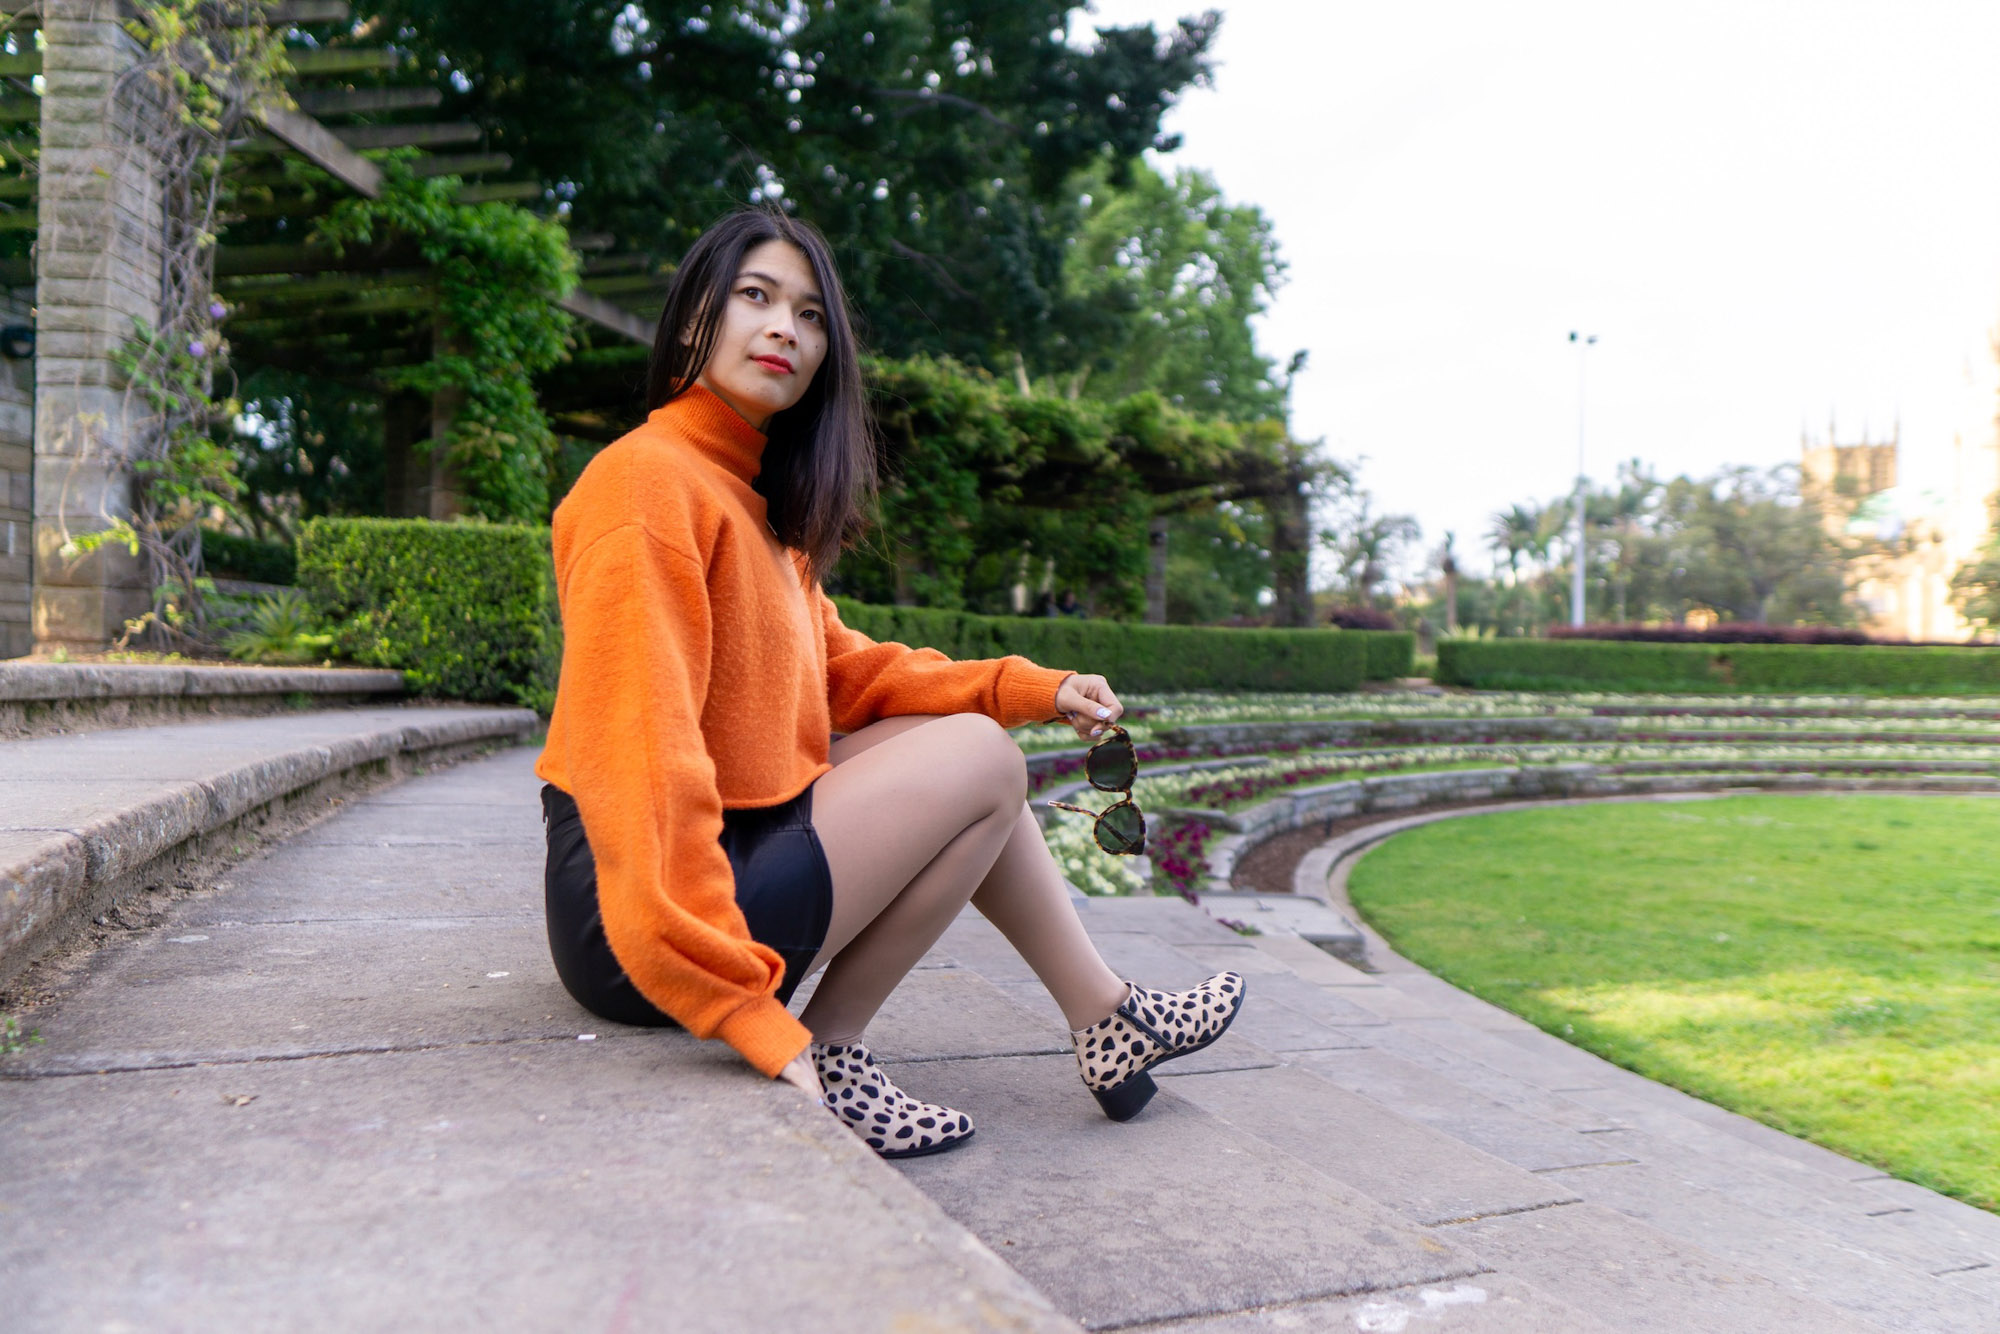 A woman sitting on stone steps. She is wearing a bright orange sweater and a black skirt. Her shoes are light in colour with black spots, resembling giraffe print. She is looking away from the camera and holding a pair of sunglasses in her left hand